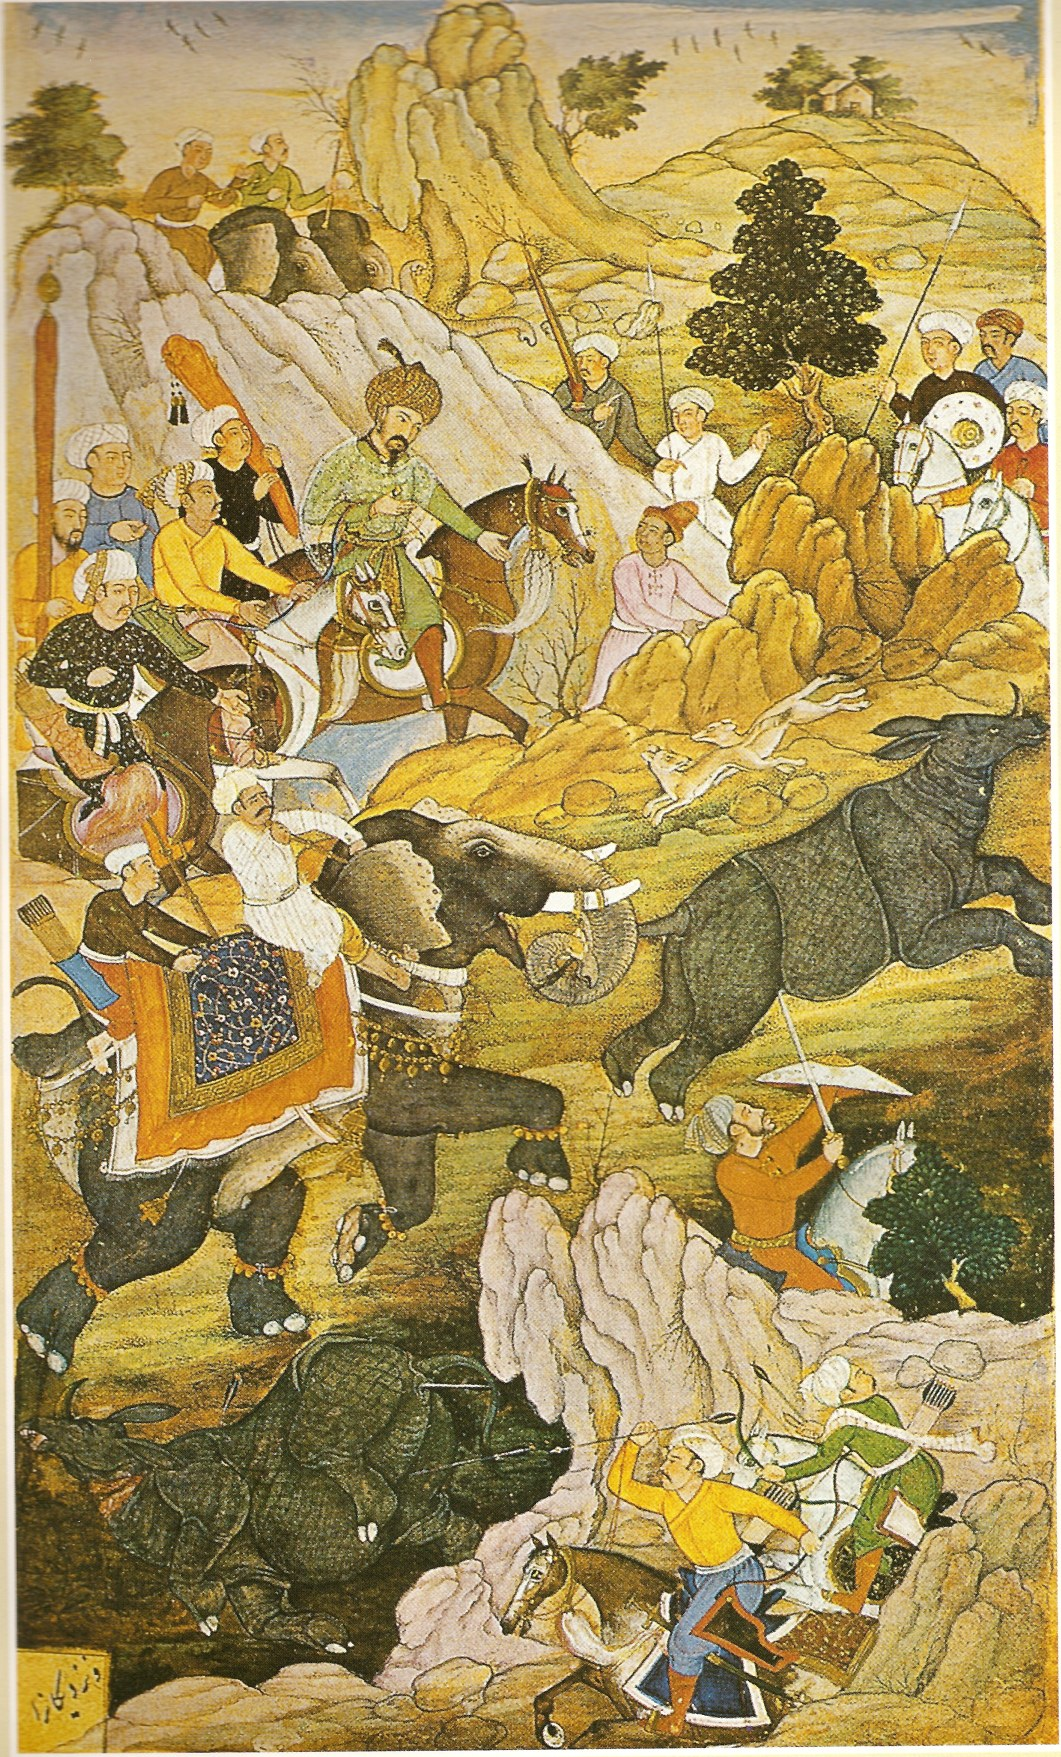 Baburnama, depicting Miniature paintings of battlefield, landscapes ...